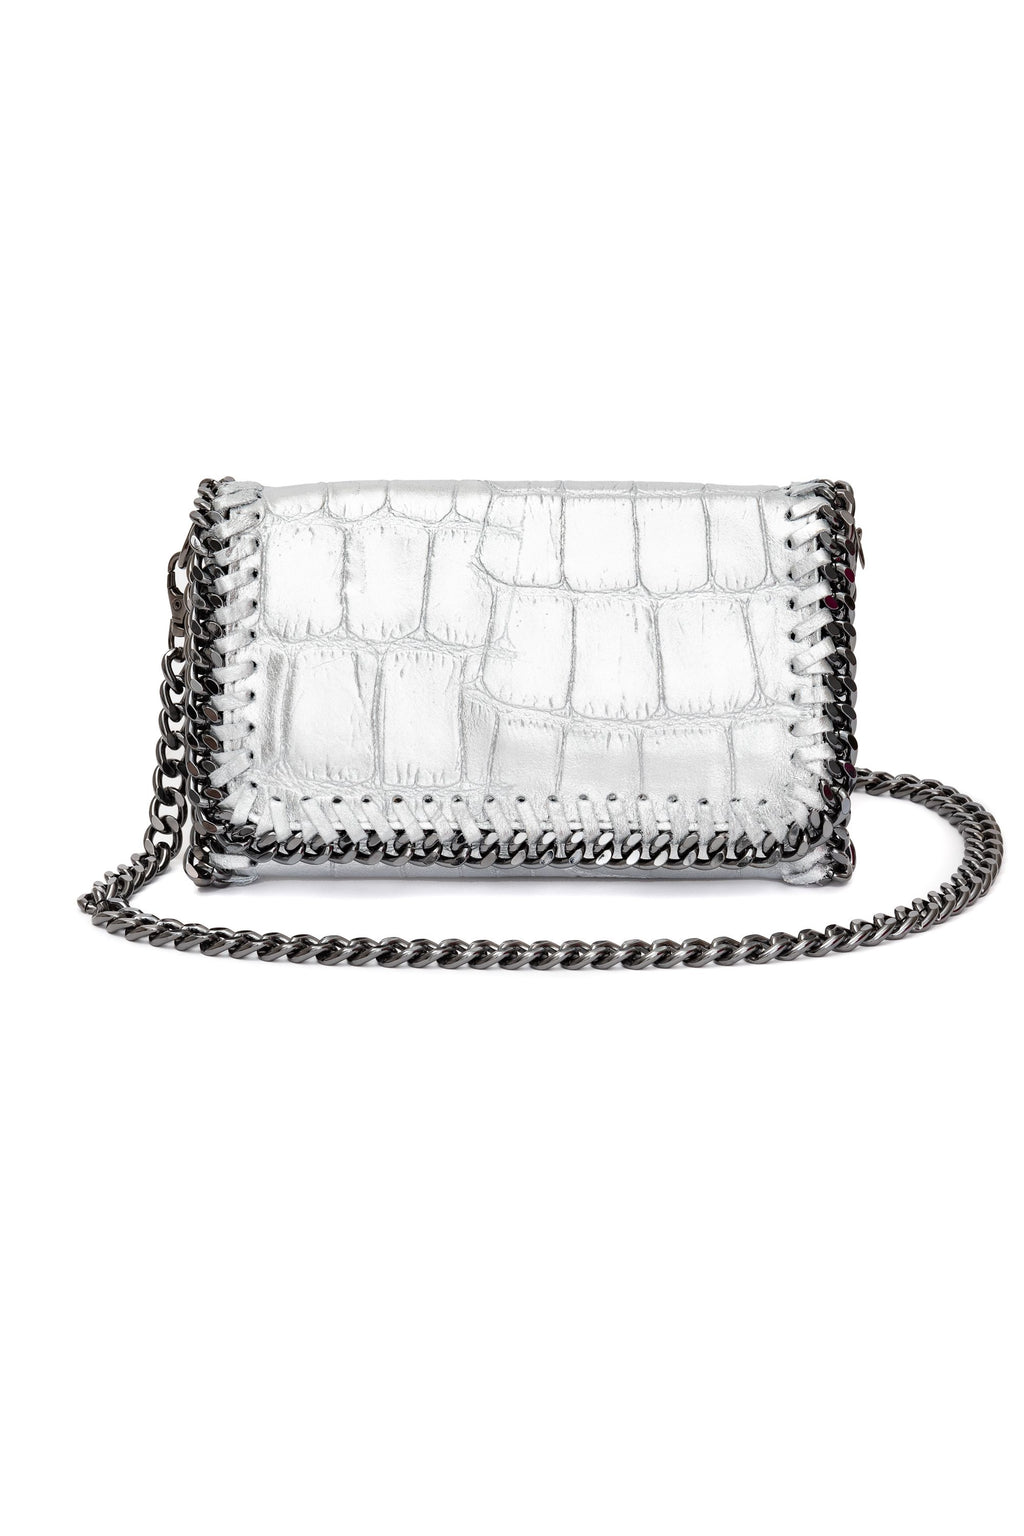 Silver Clutch Cross Body Bag